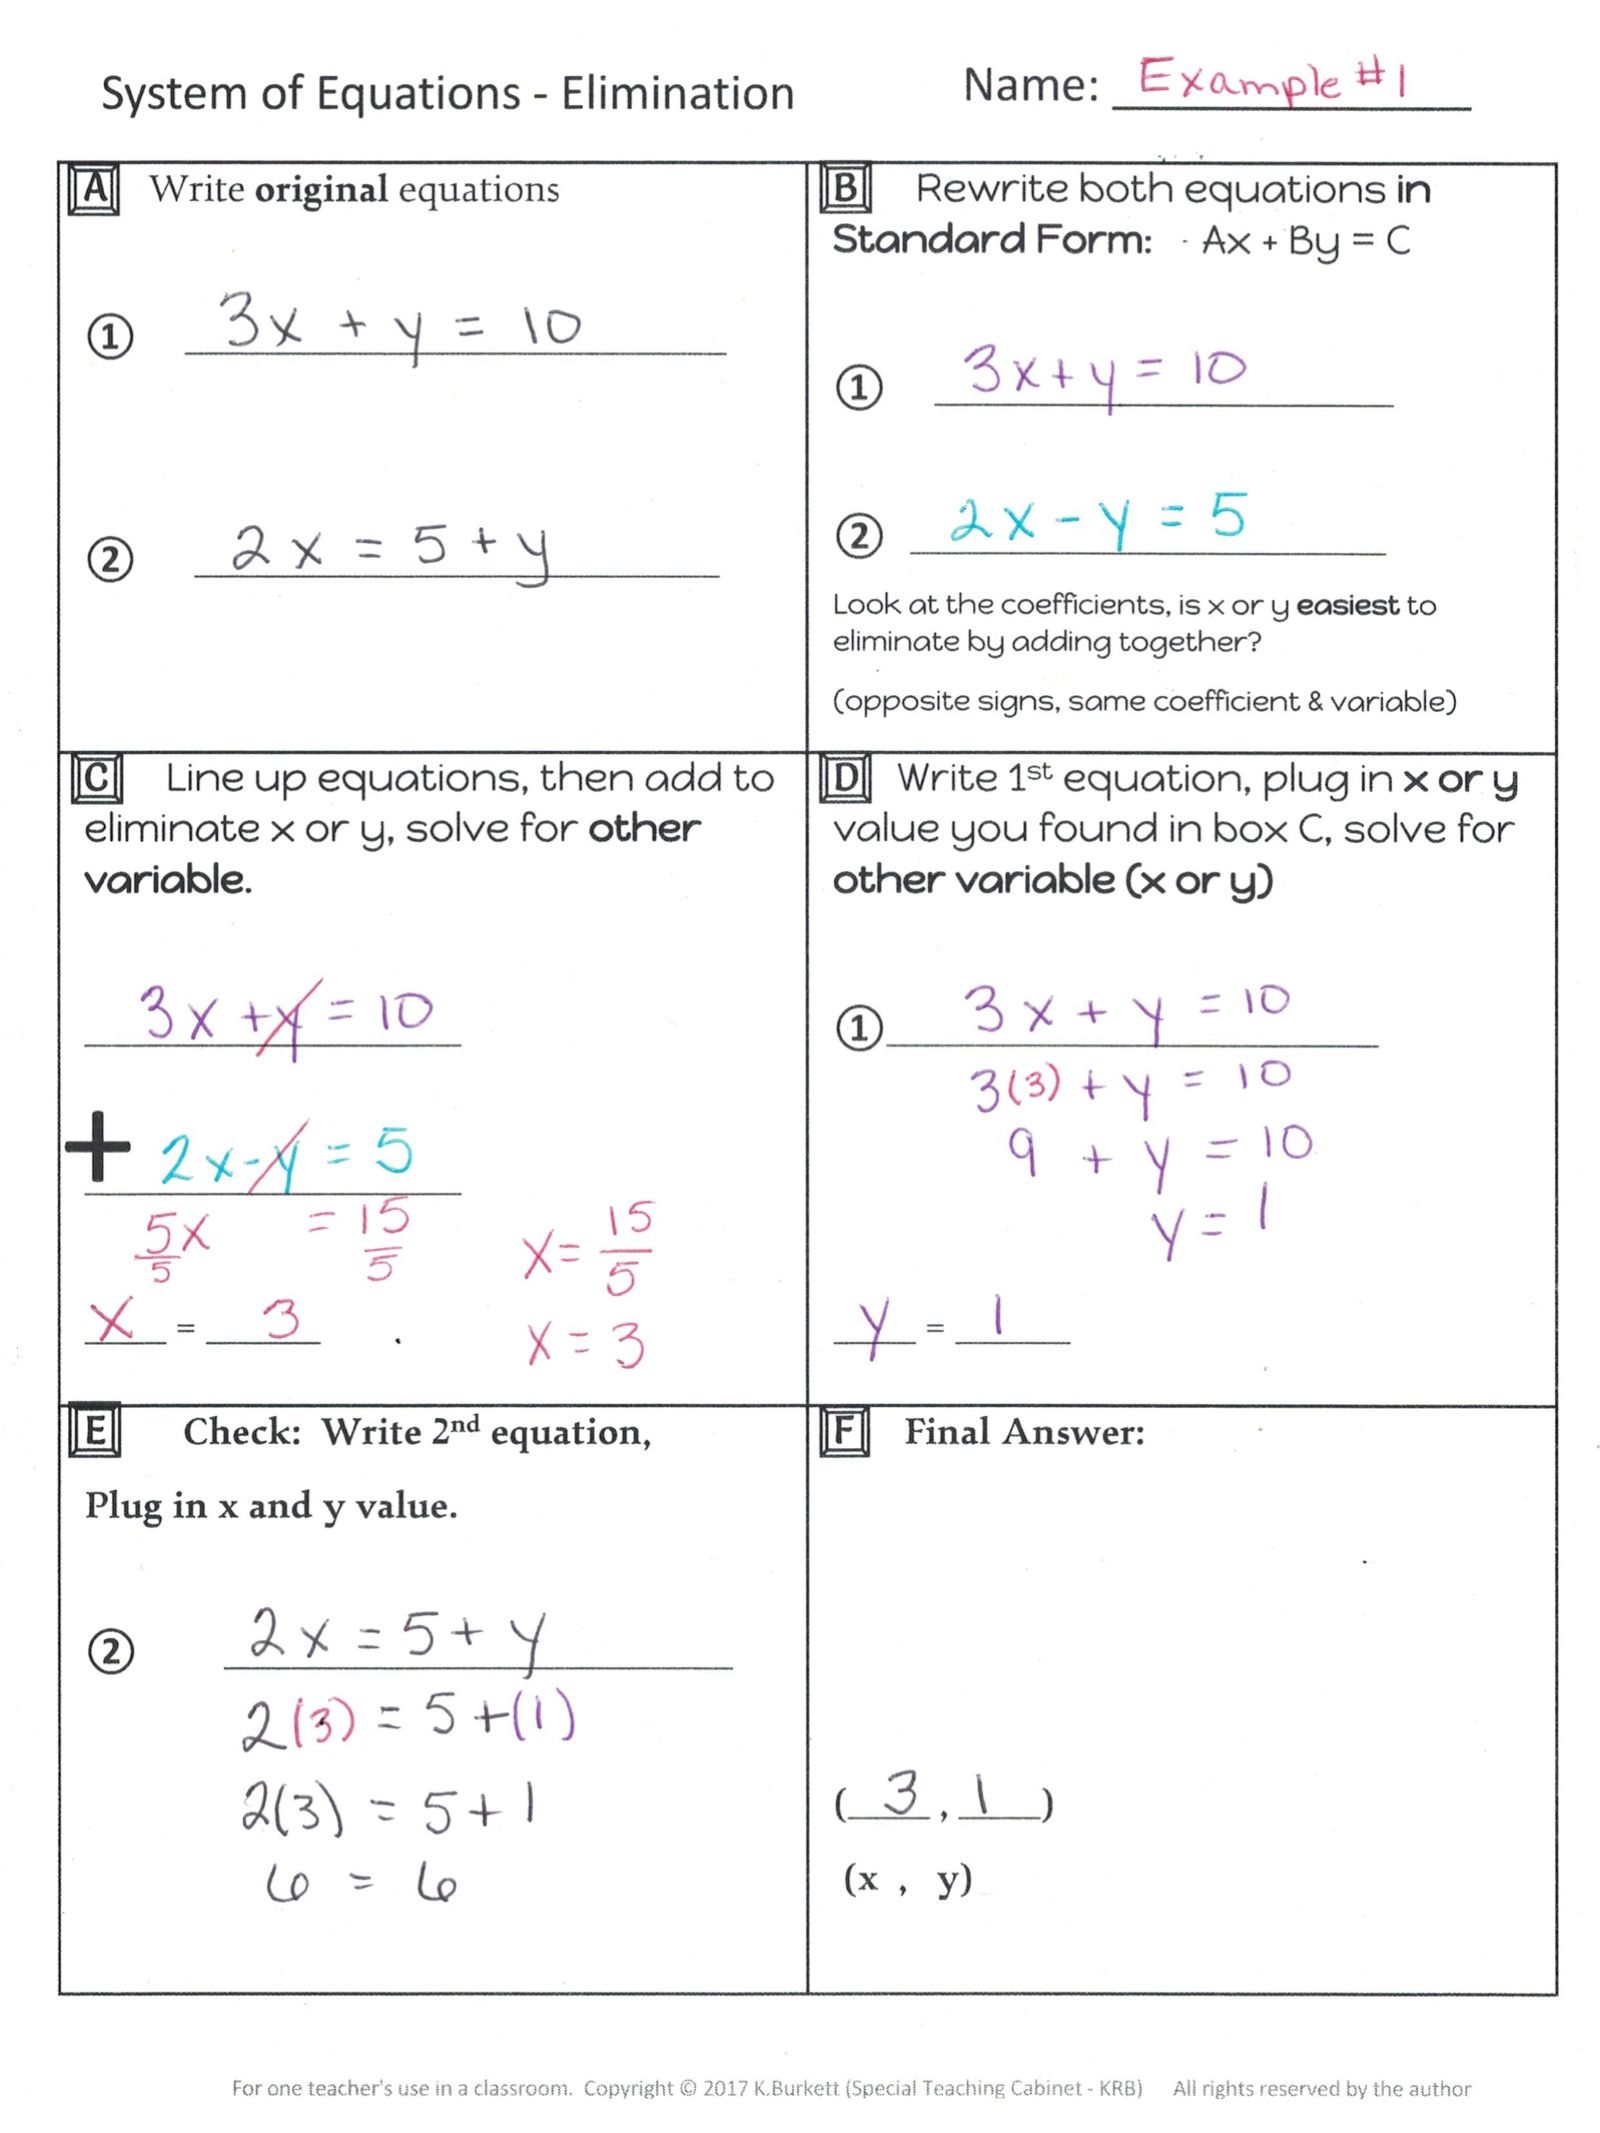 System Of Equations Elimination Organizer Notes And